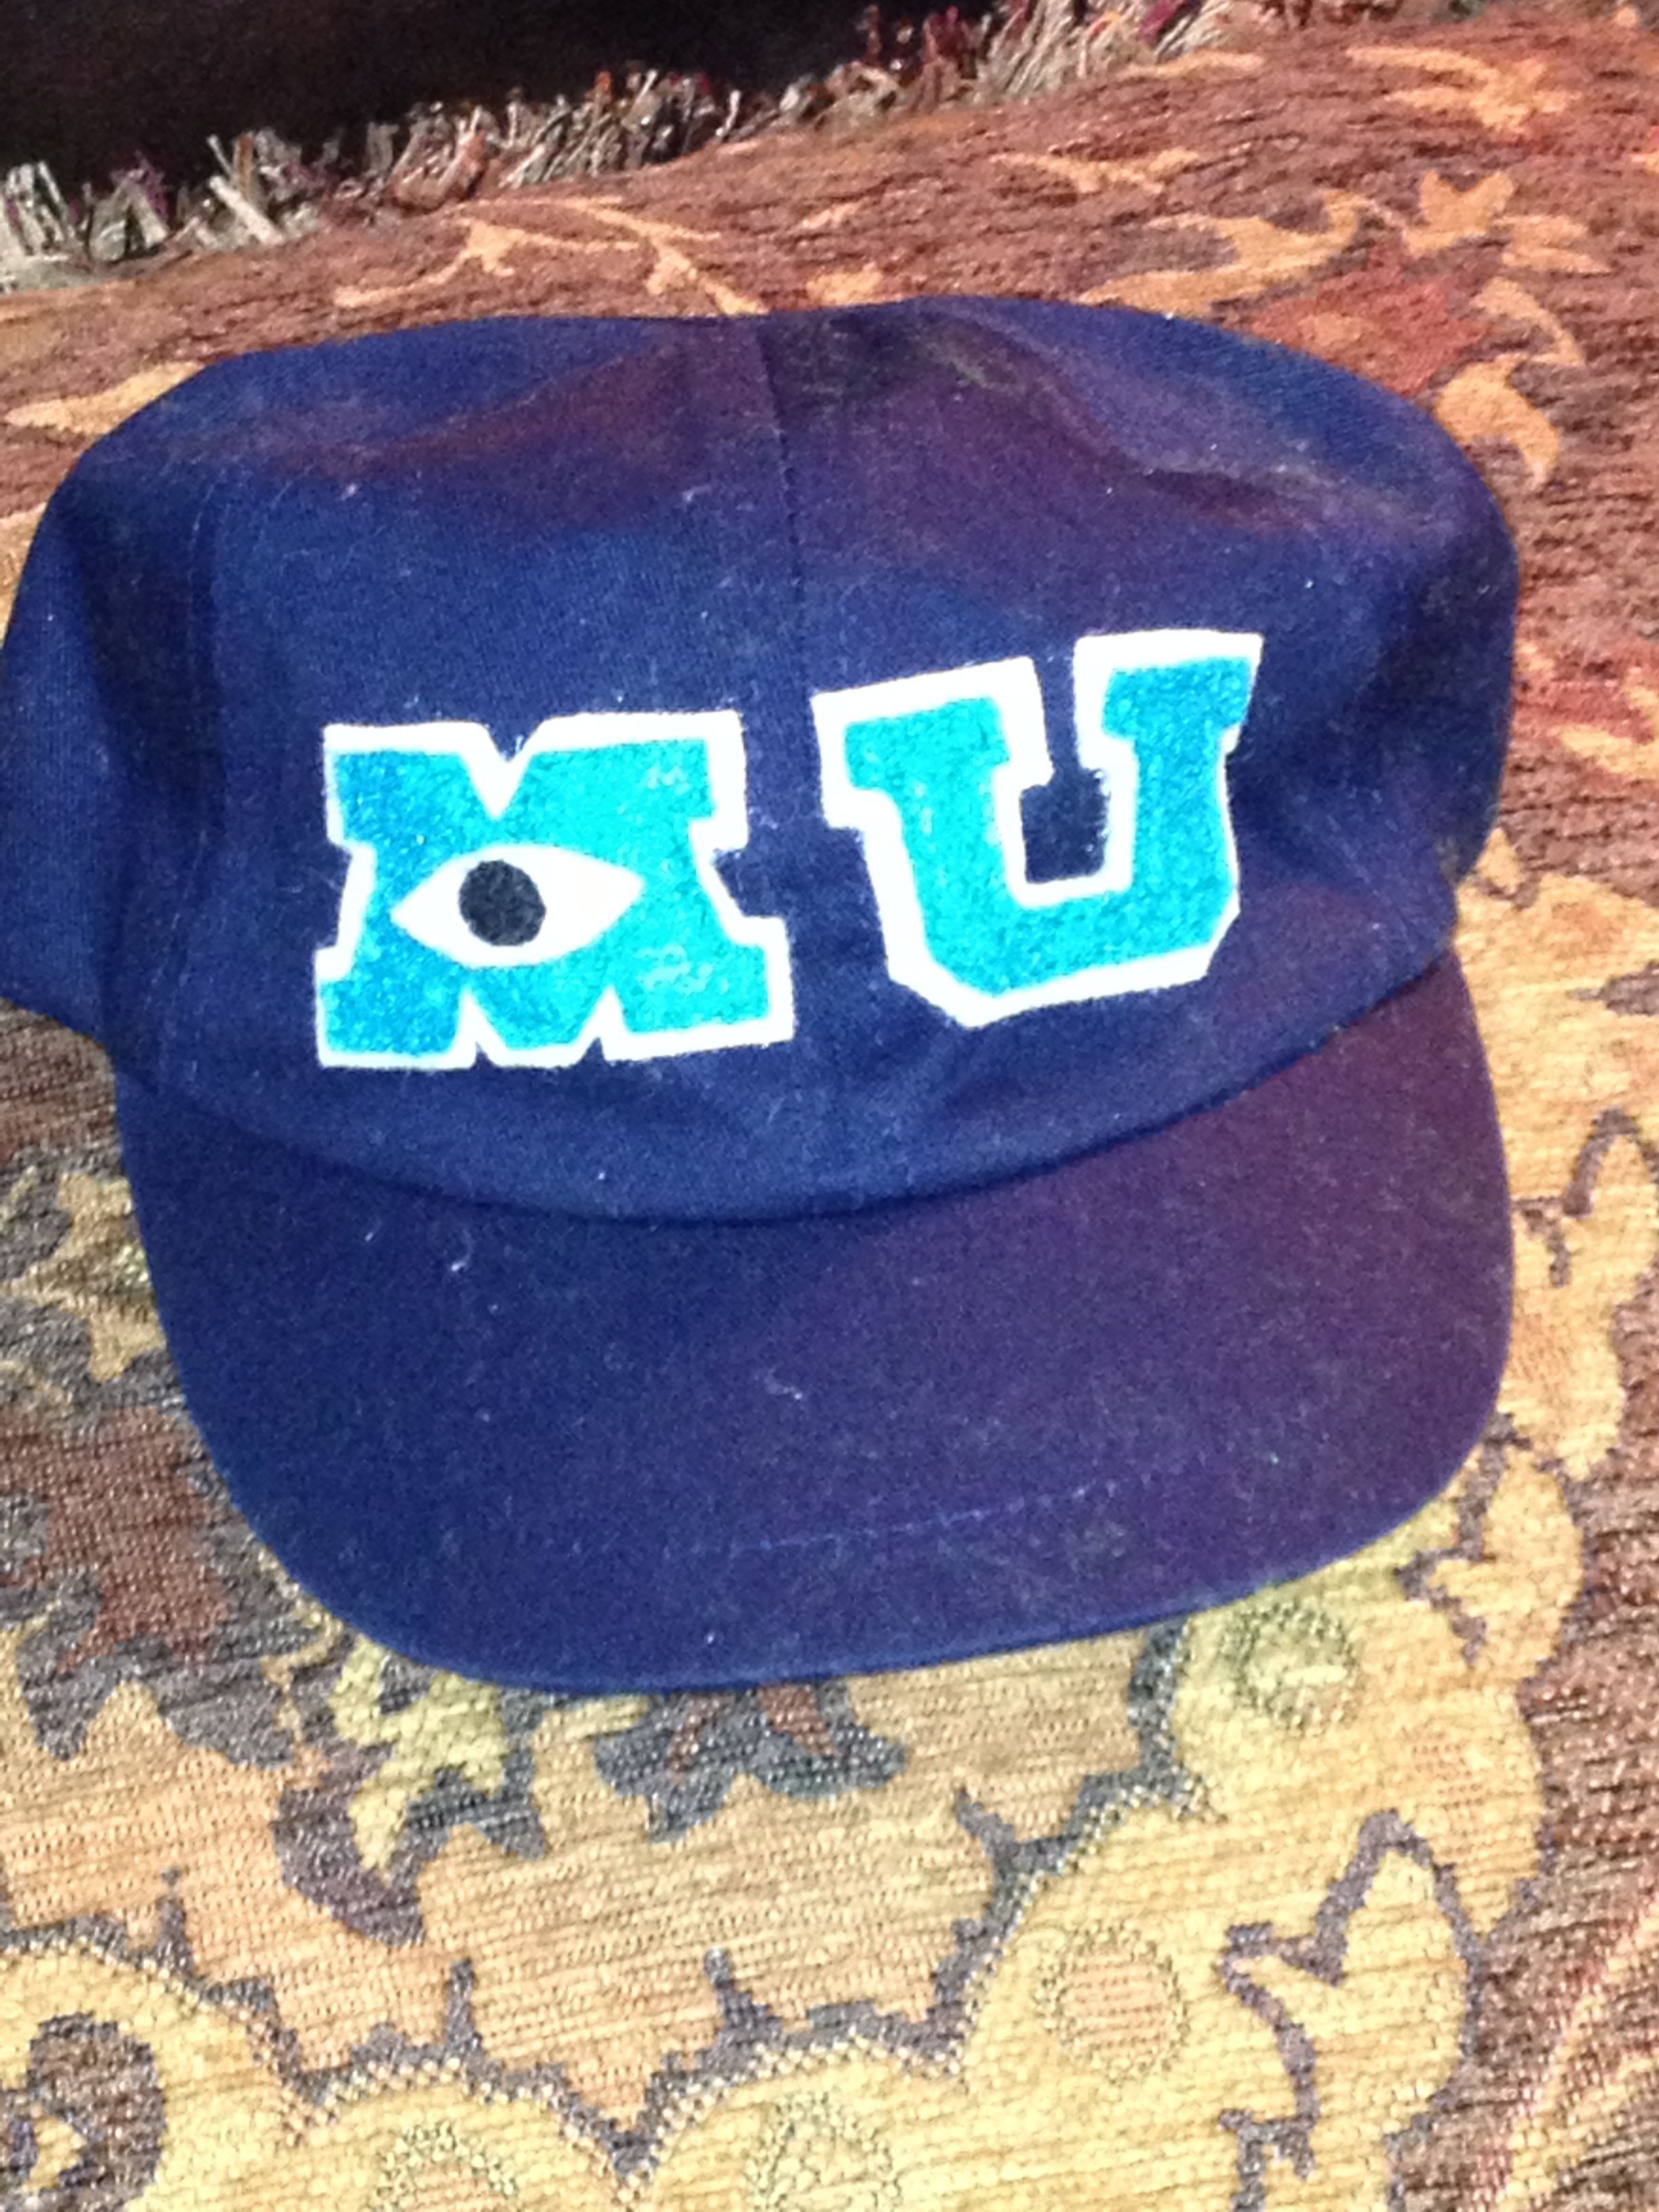 Monsters University Diy Toddler Costume Hat Walmart Toddler Hat In Navy Less Than 3 50 Felt In White Diy Toddler Costumes Little Monster Party Diy Monsters